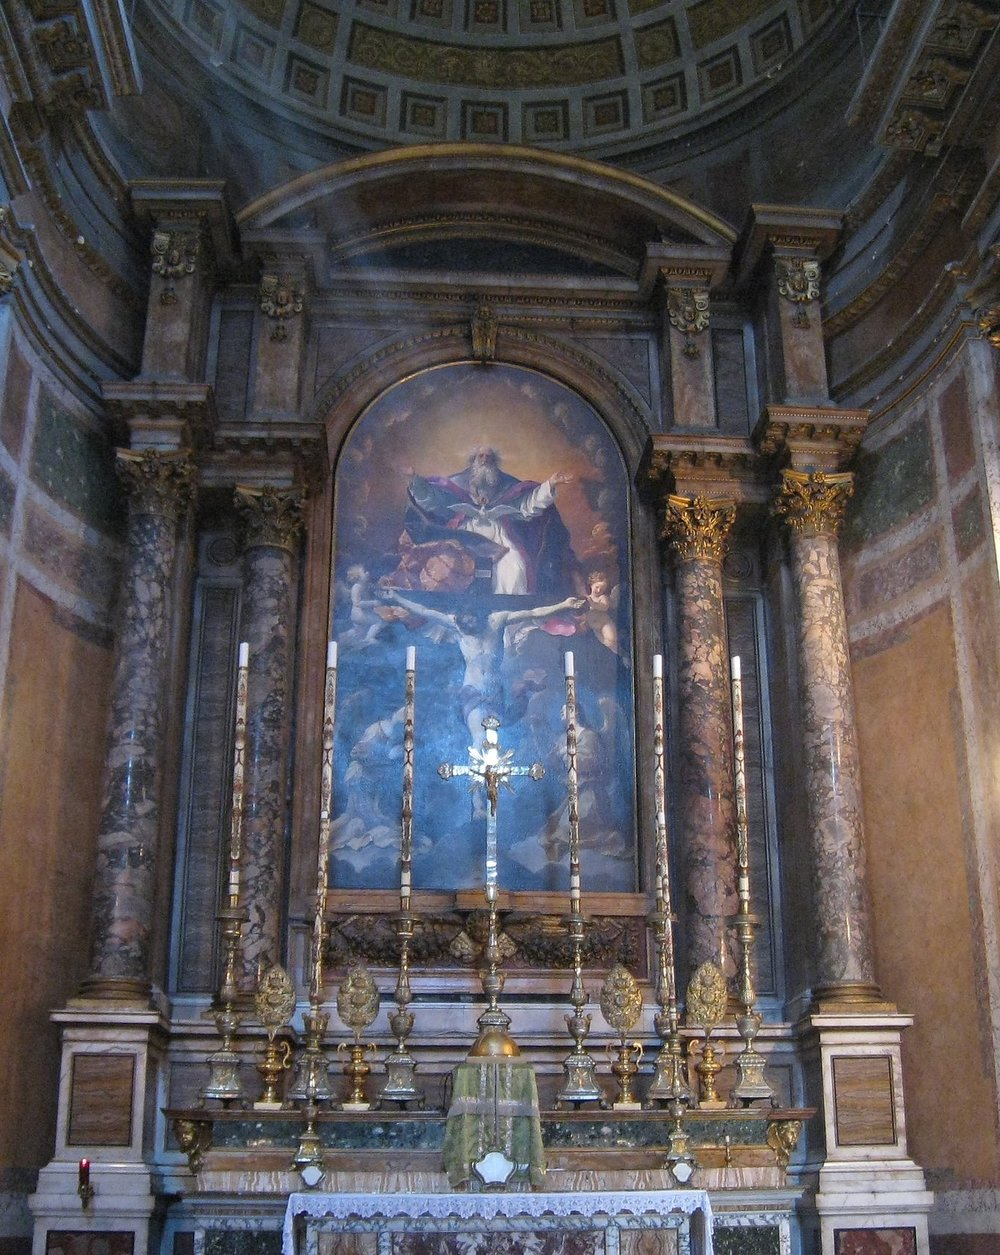 The high altar in Santissima Trinita dei Pellegrini at a moment when a ray of sunlight is on the crucifix